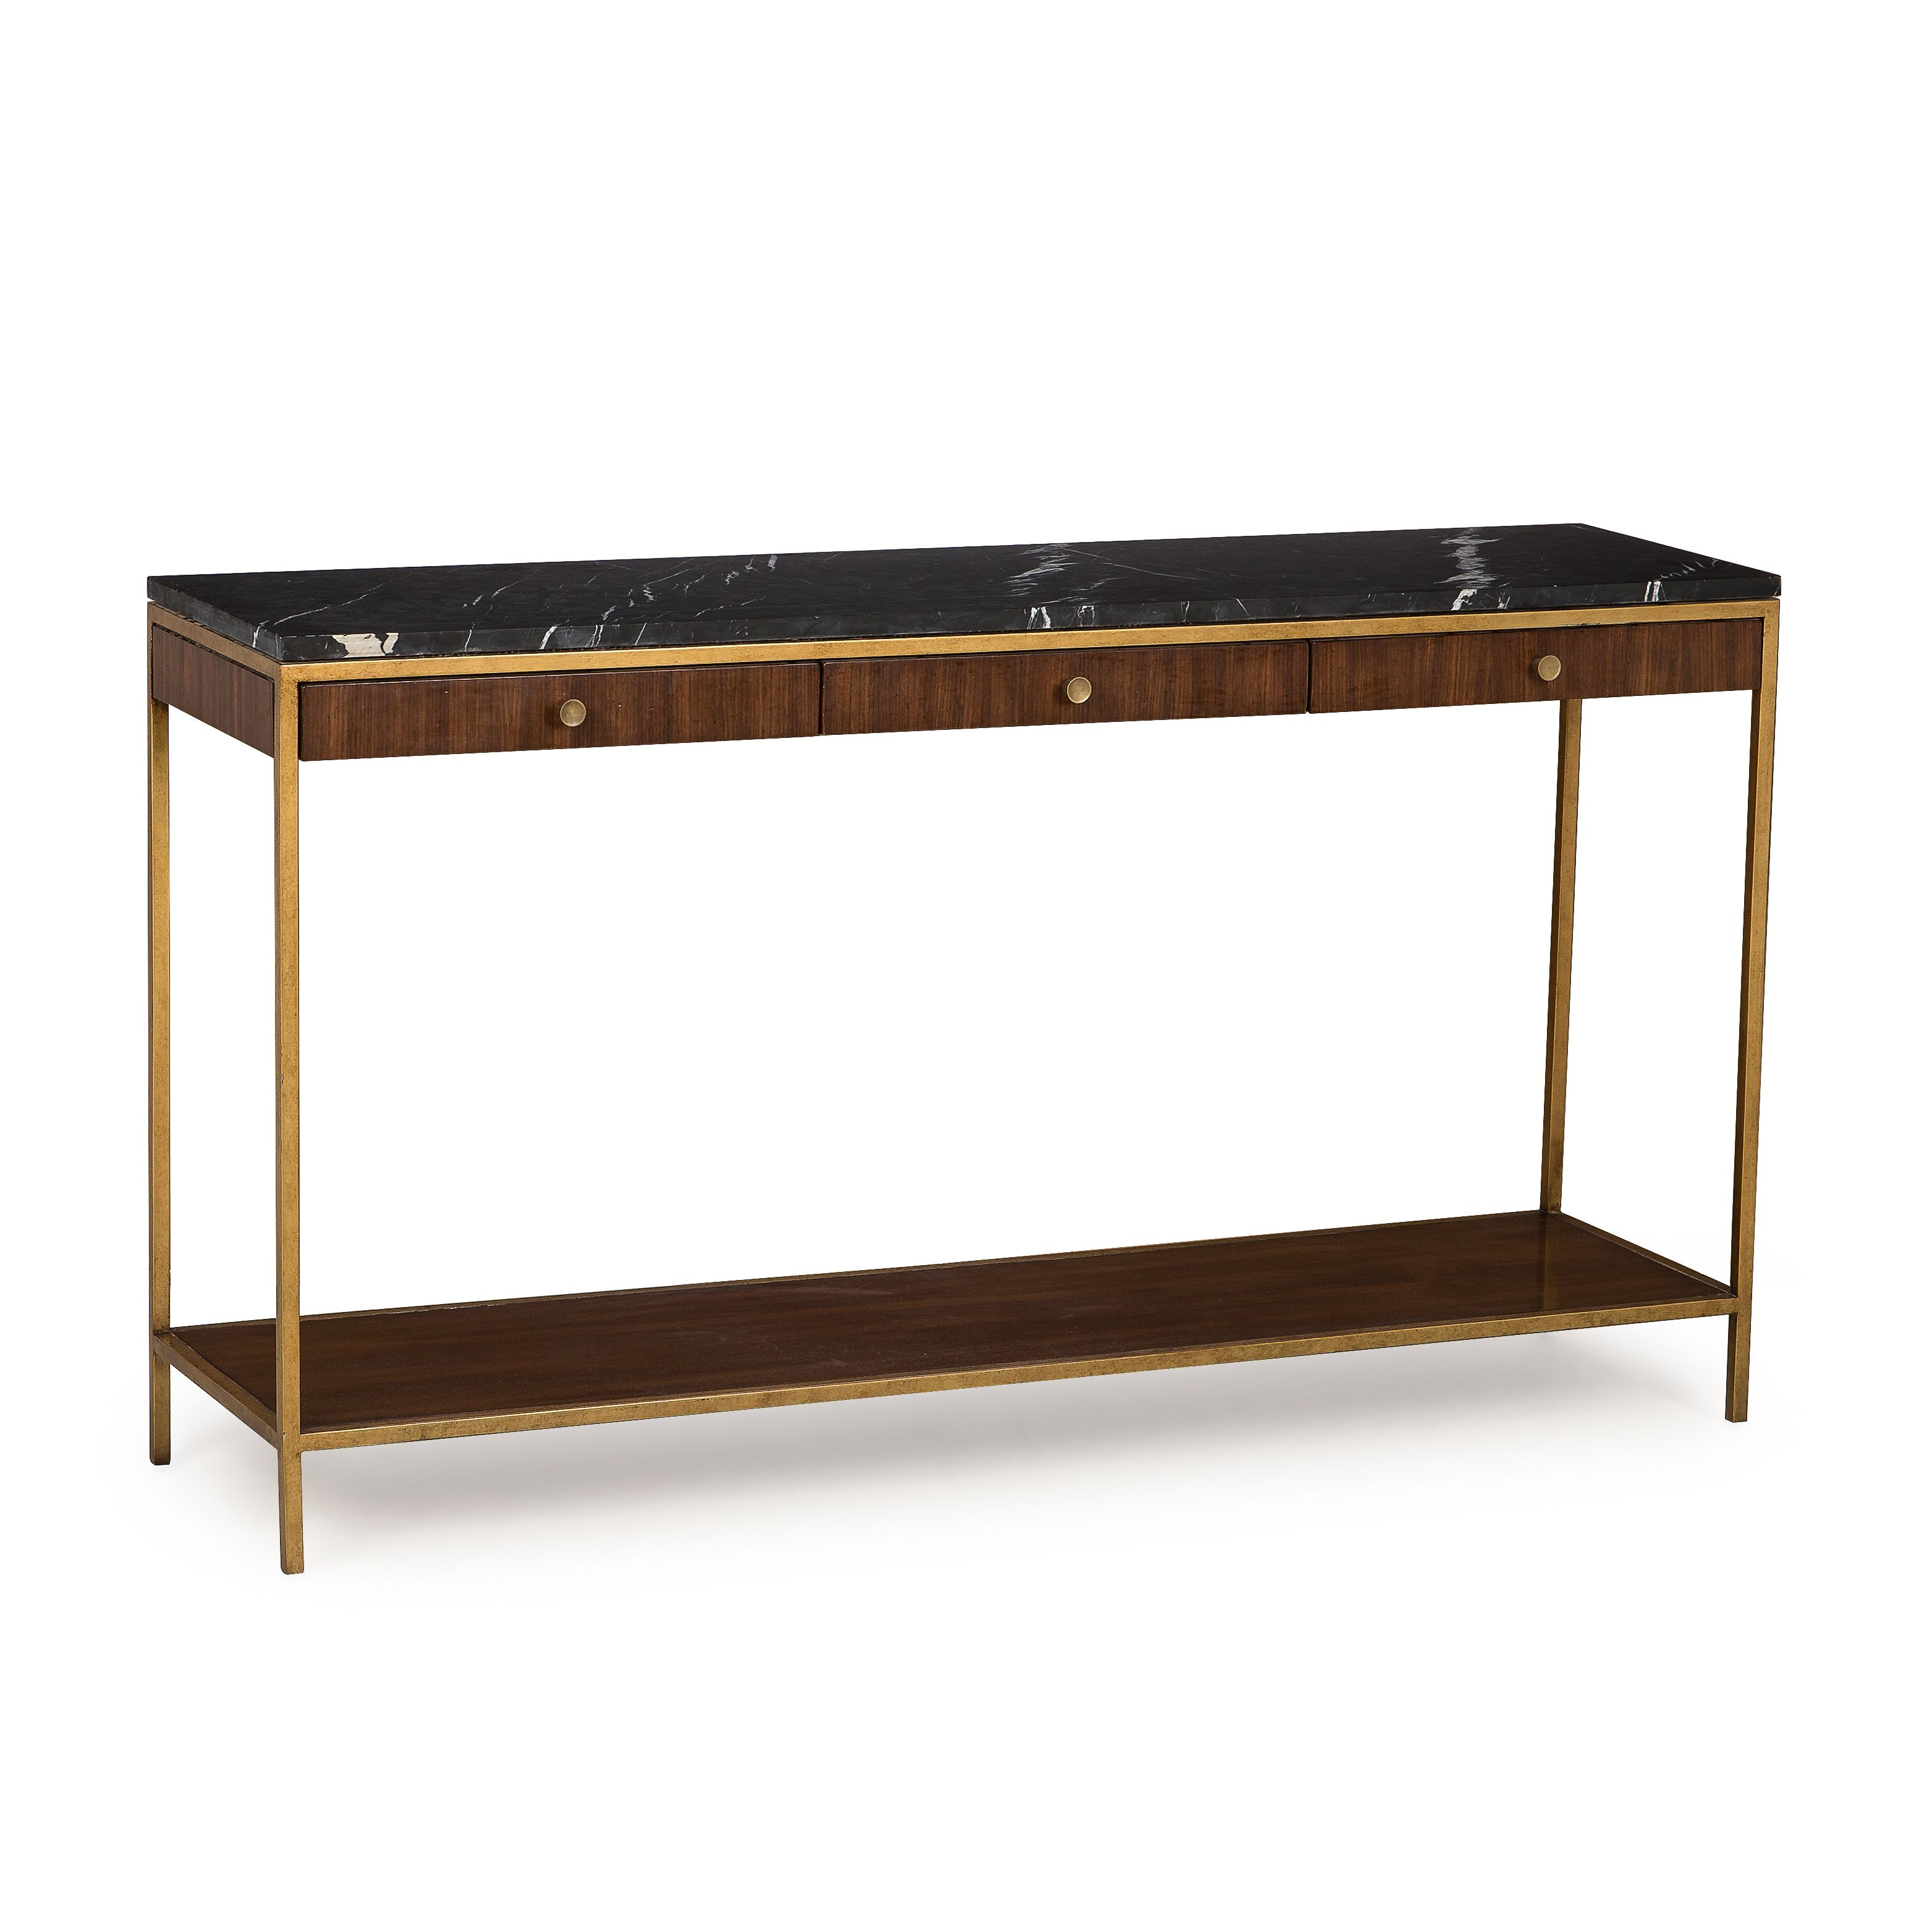 A Mid Century Inspired Console Table With A Beautiful Satin Brass Pertaining To Mix Agate Metal Frame Console Tables (View 2 of 20)